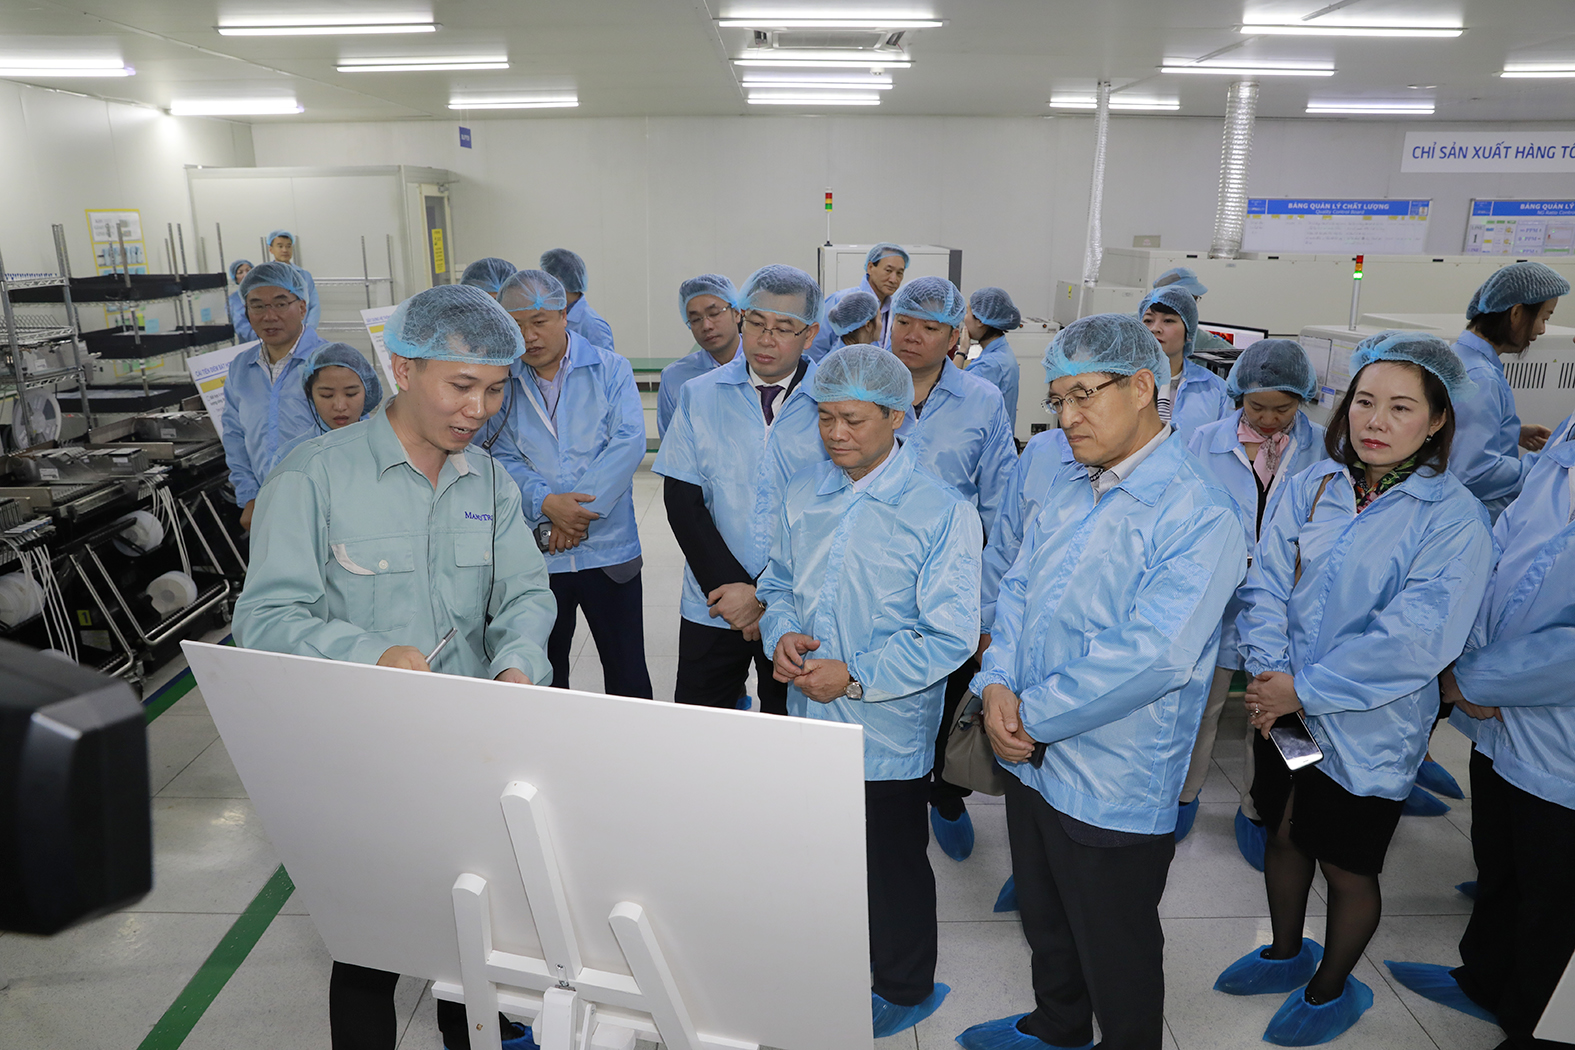 samsung elevates 29 vietnamese vendors to tier 1 supply chain